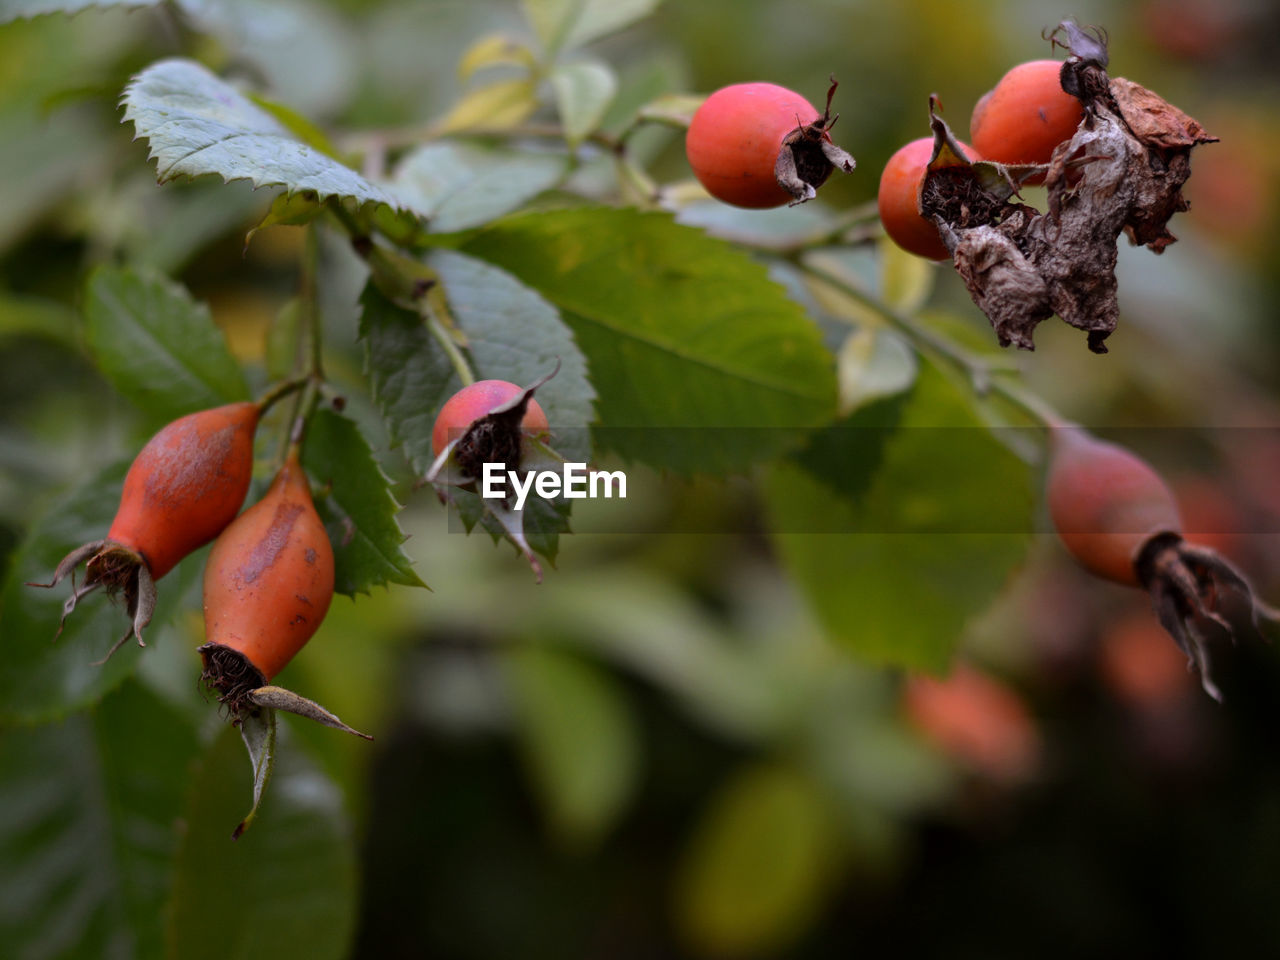 fruit, food and drink, growth, leaf, nature, rose hip, close-up, food, focus on foreground, outdoors, red, day, freshness, no people, plant, healthy eating, tree, beauty in nature